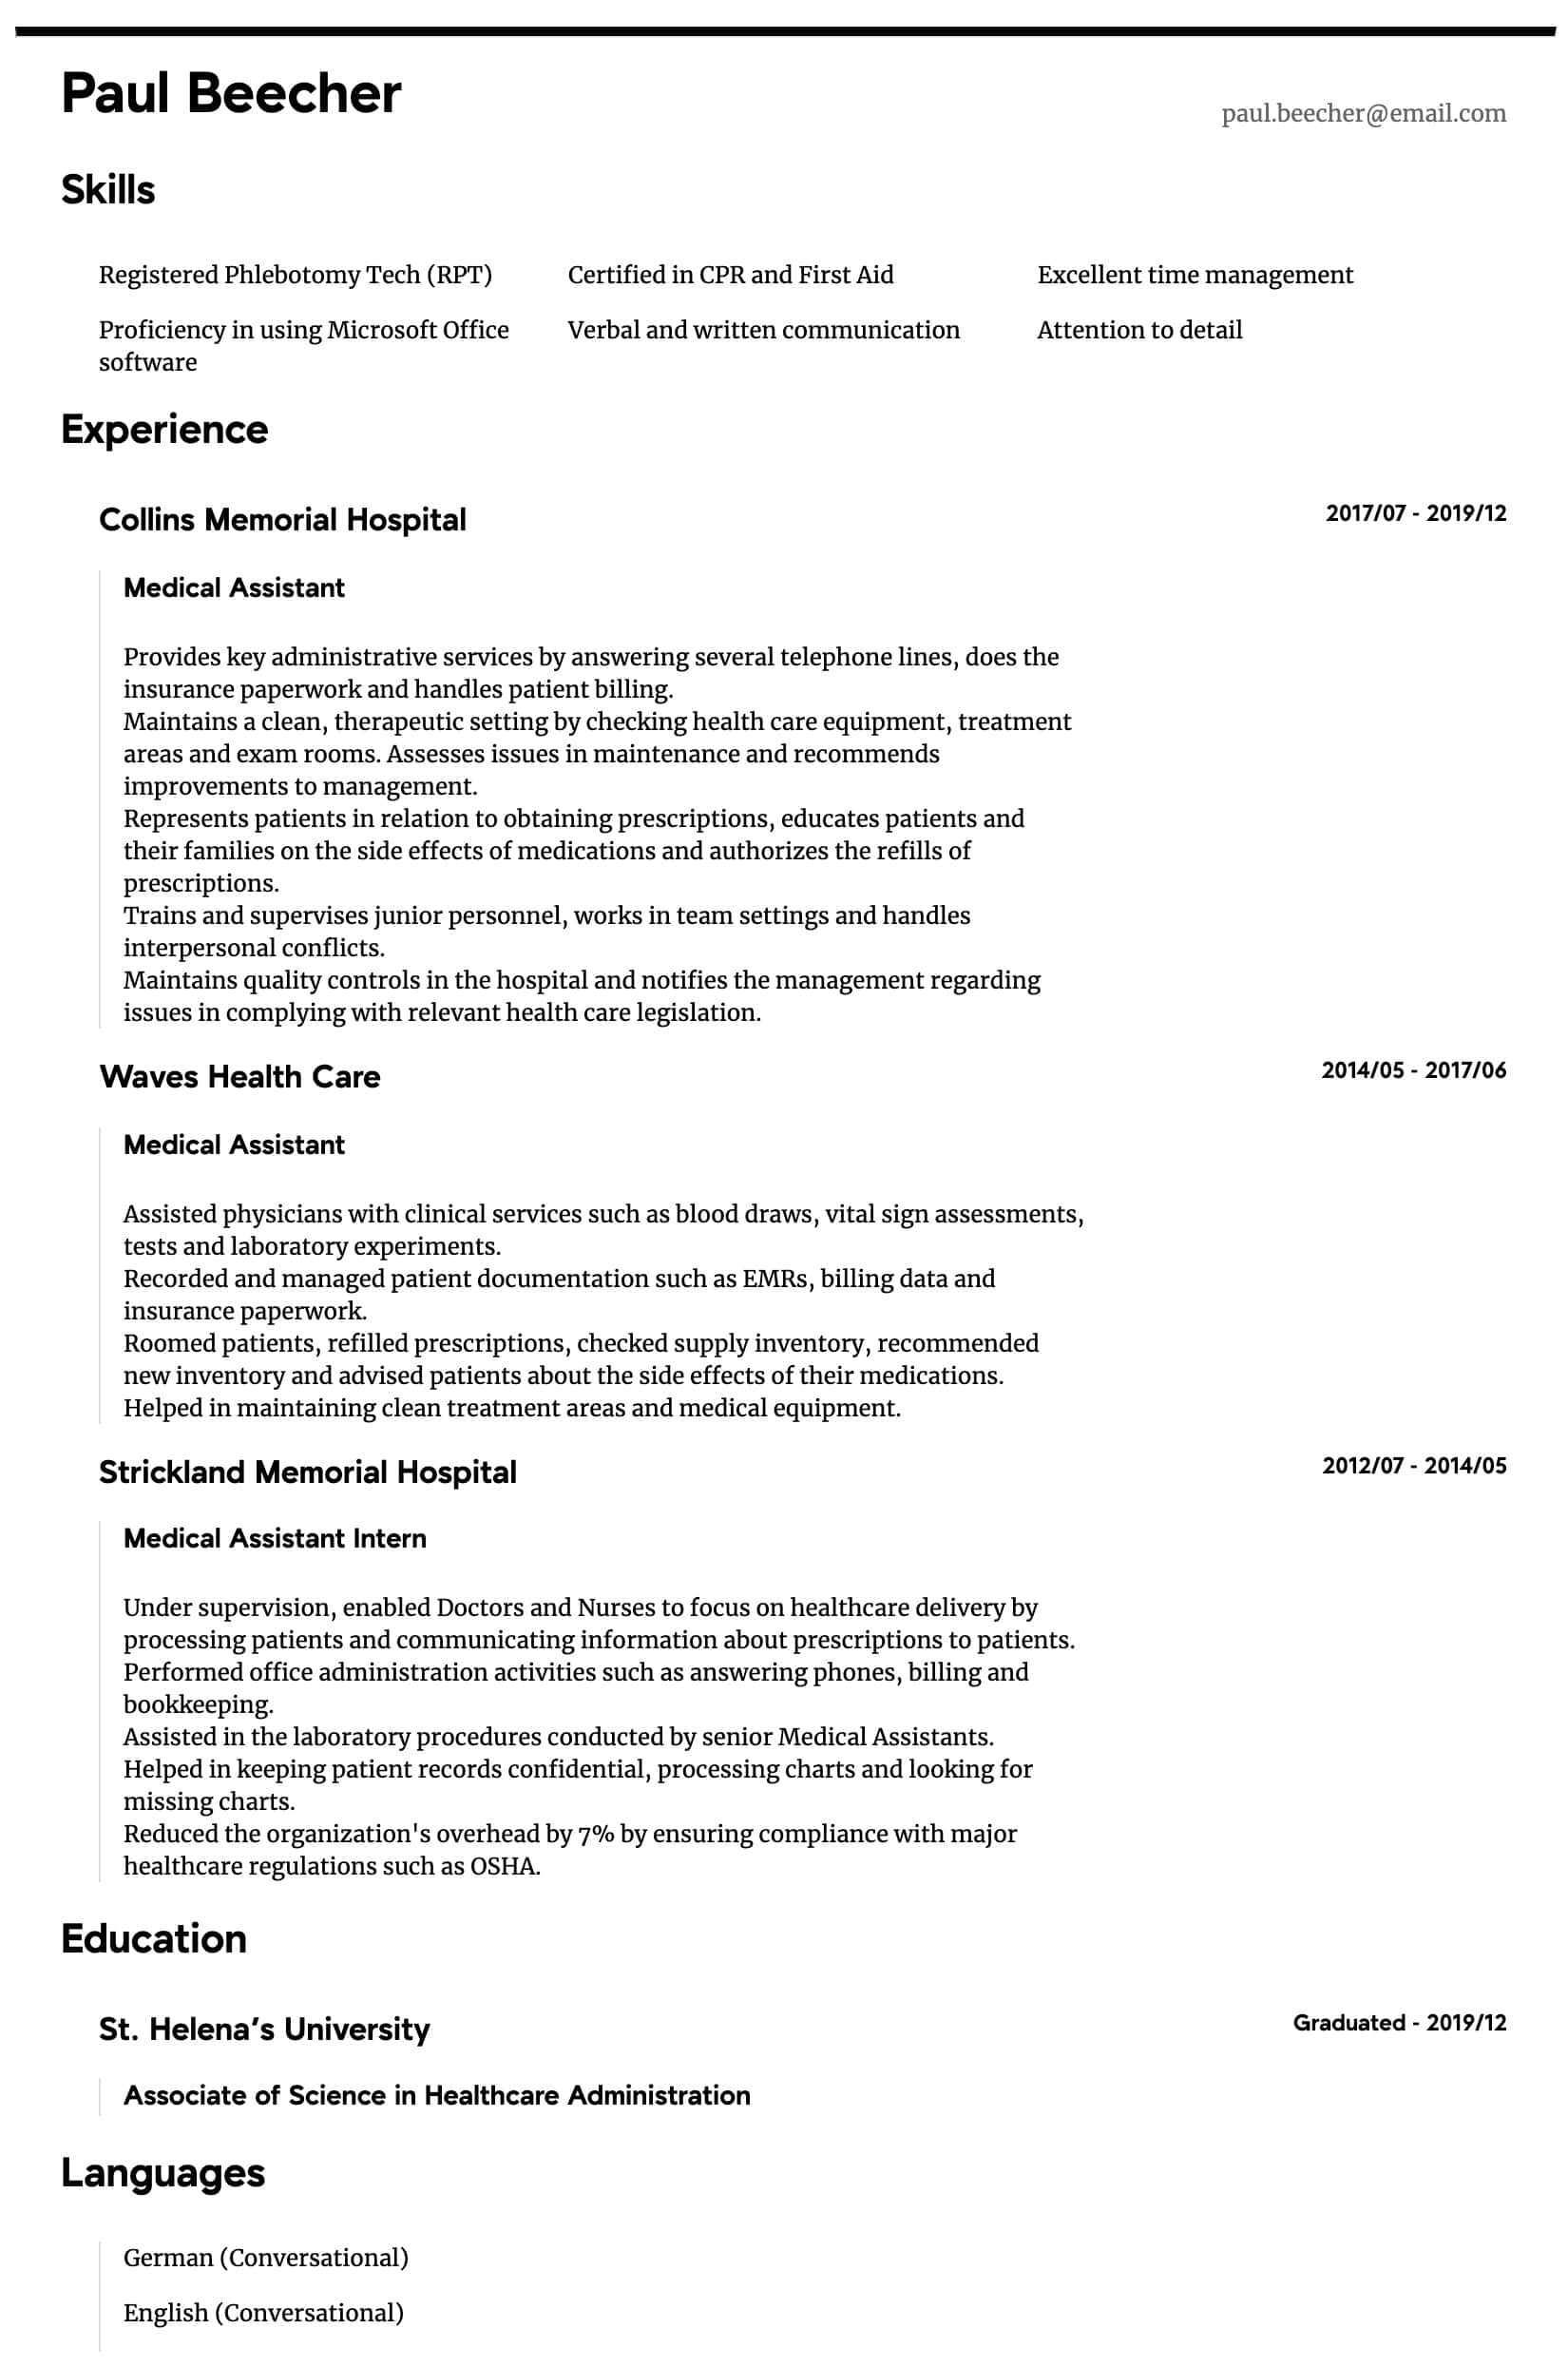 medical assistant resume samples all experience levels job intermediate senior software Resume Medical Assistant Job Resume